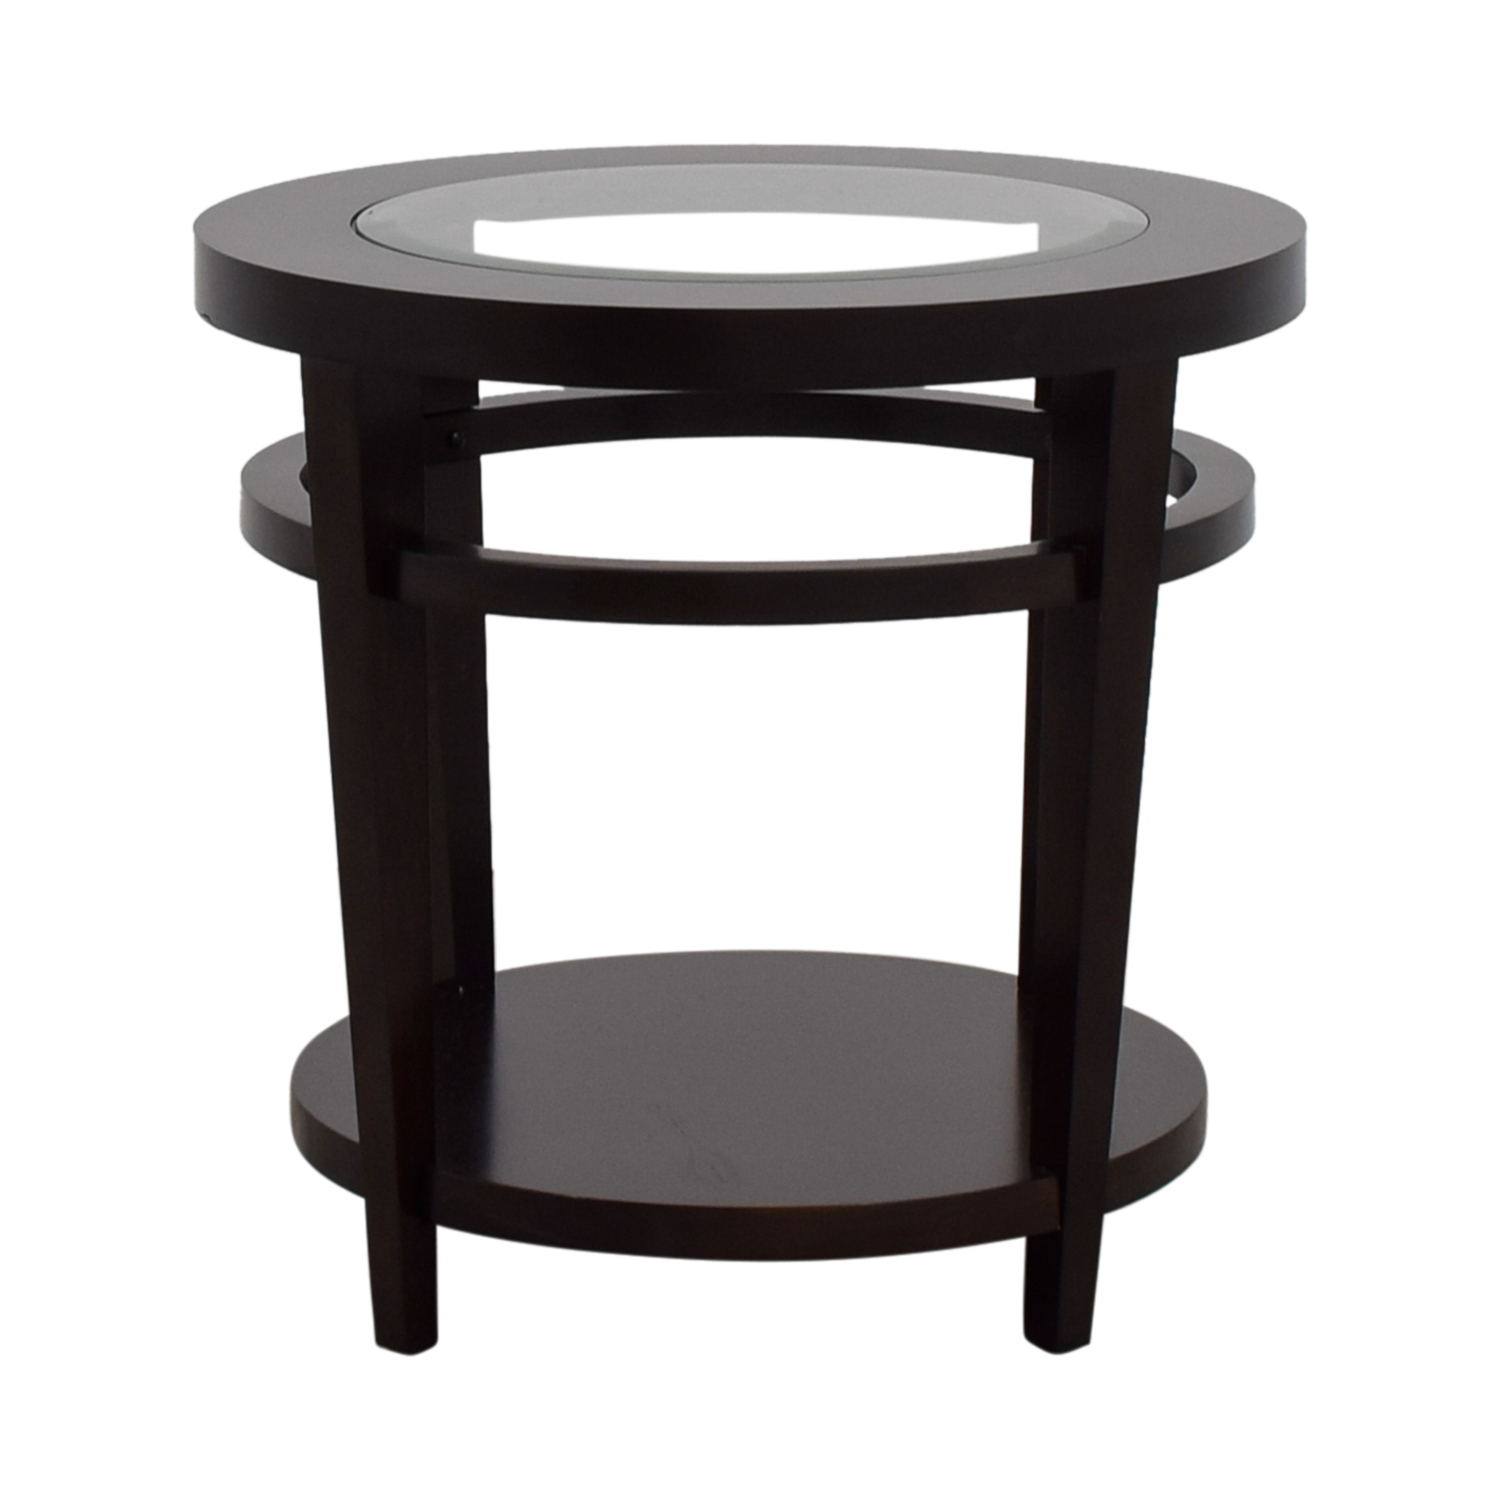 Macys Macys Avalon Round Wood and Glass Side Table price